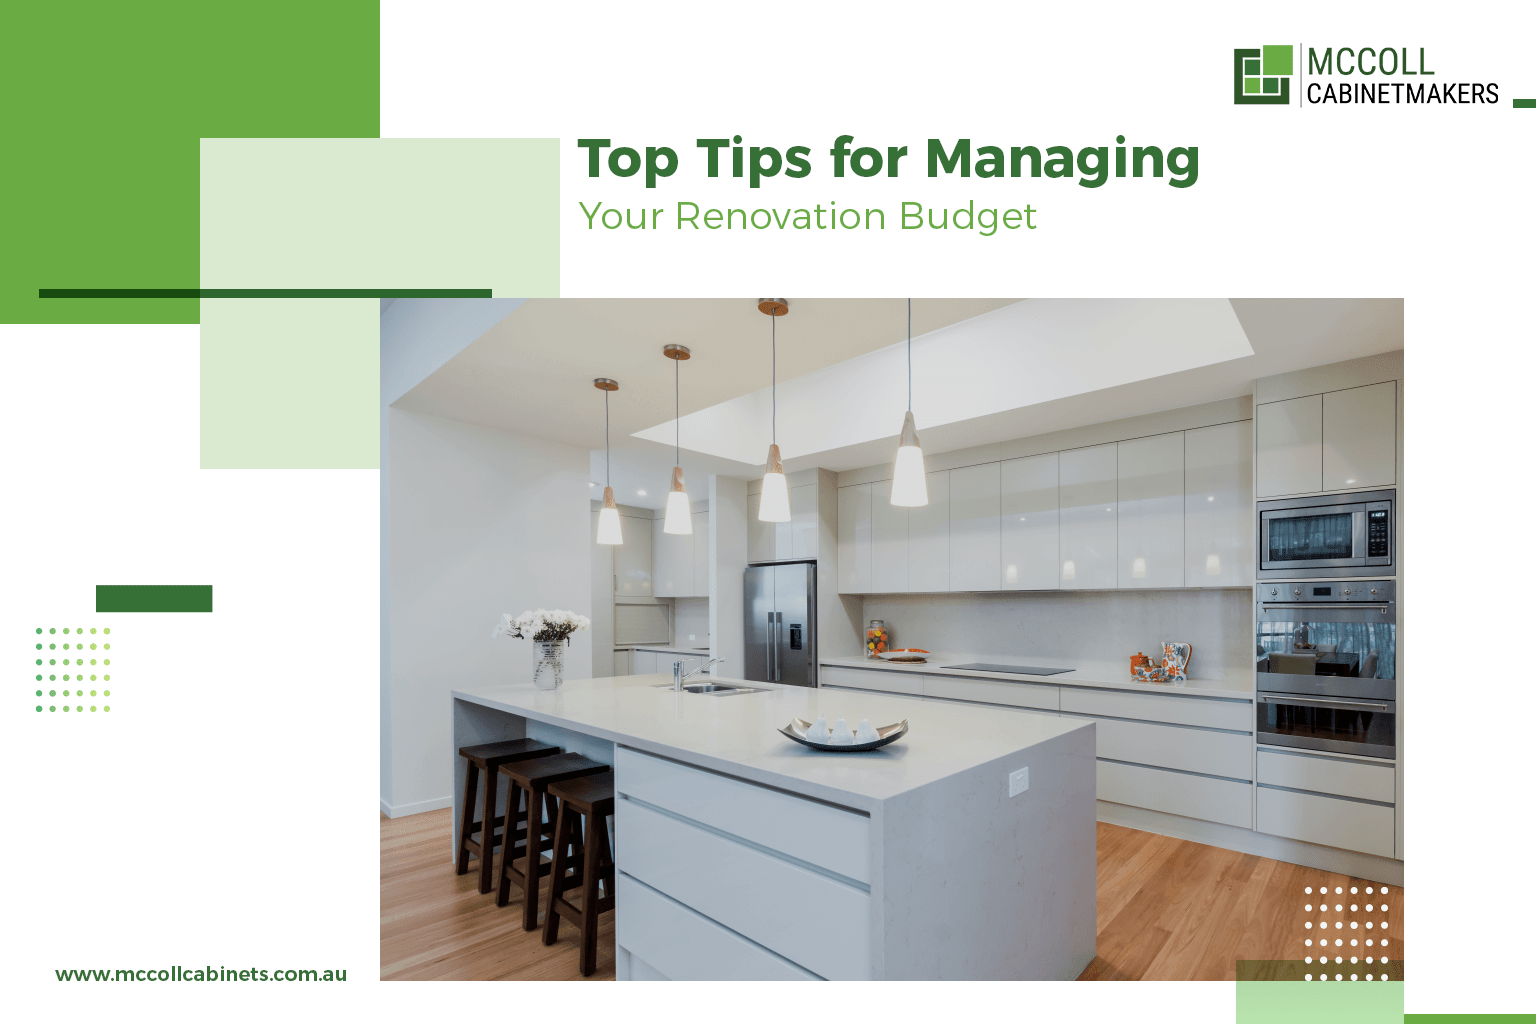 Tips for Managing Your Renovation Budget  | McColl cabinets